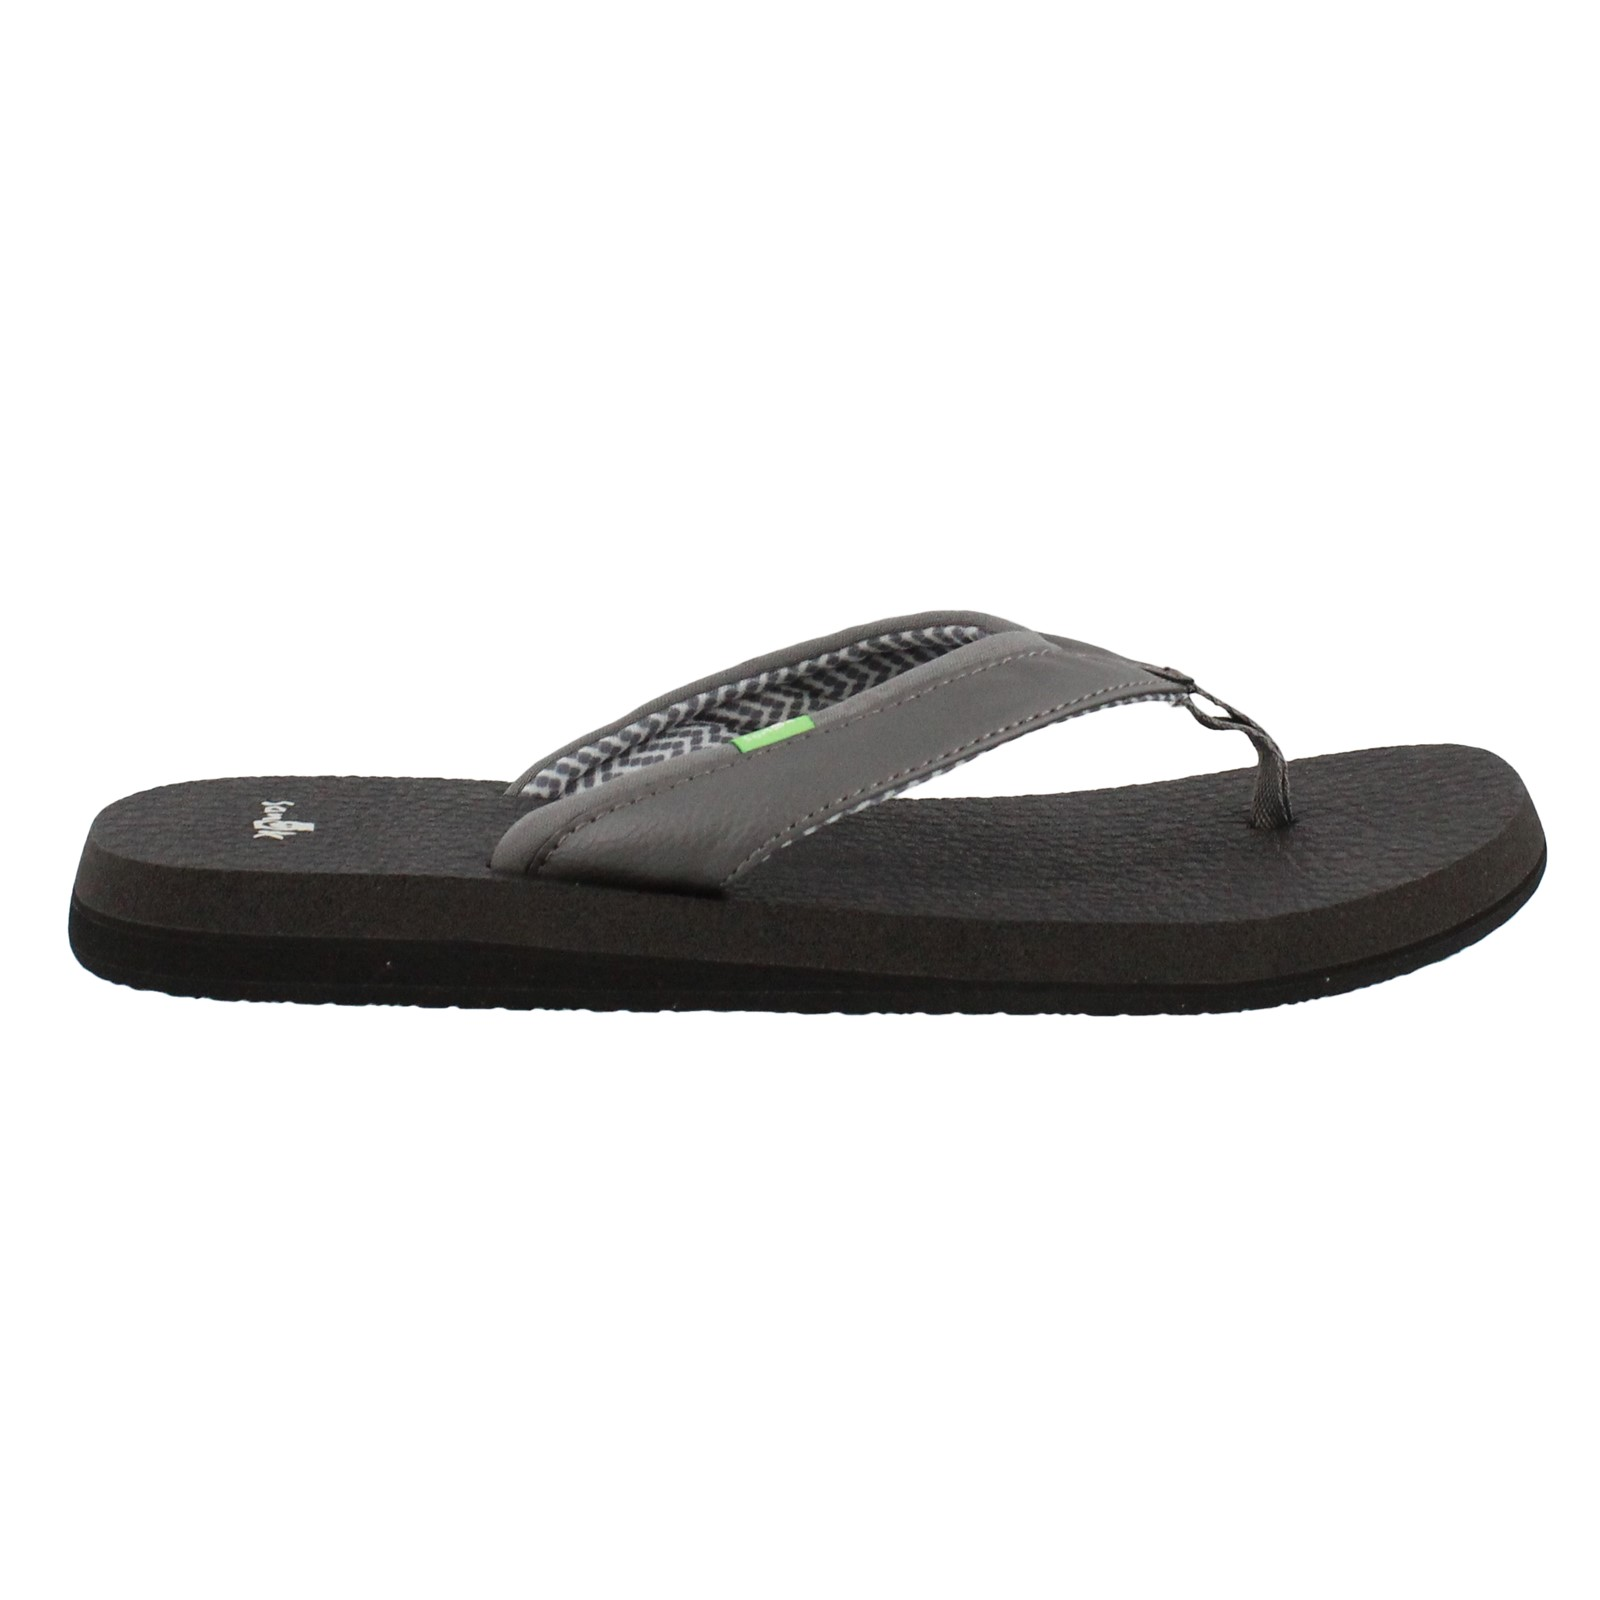 Women's Sanuk, Yoga Mat 2 Sandals